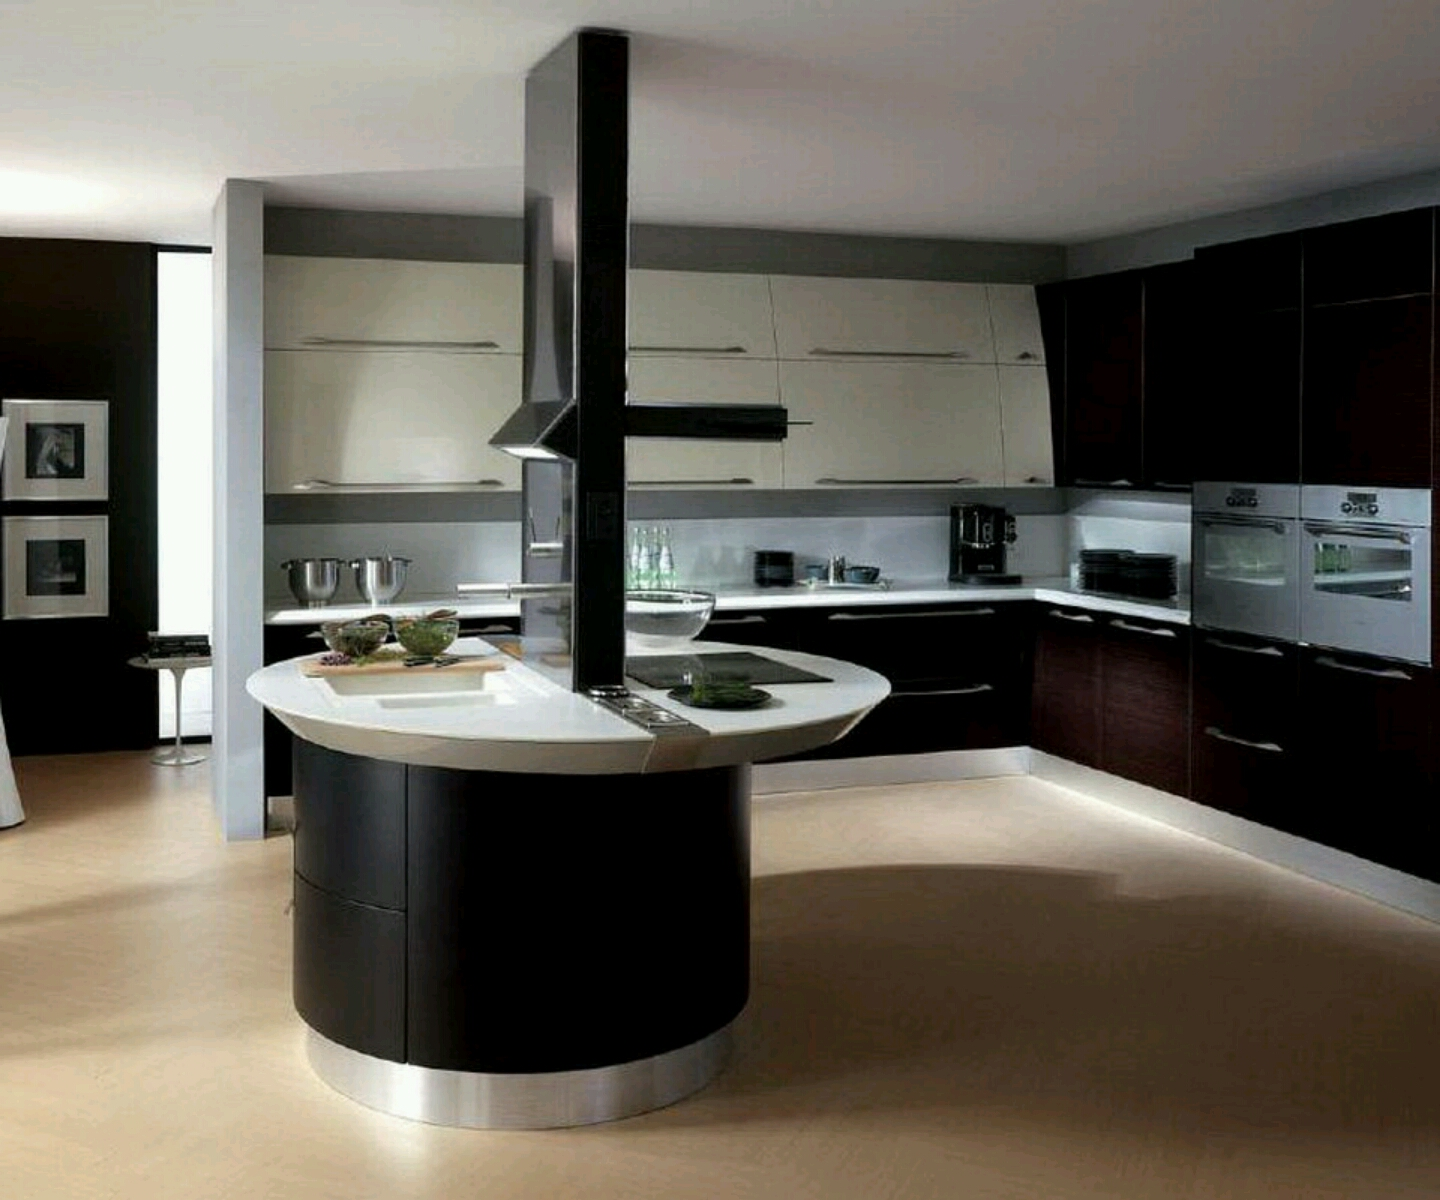 Modern kitchen cabinet design for Pics of modern kitchen designs